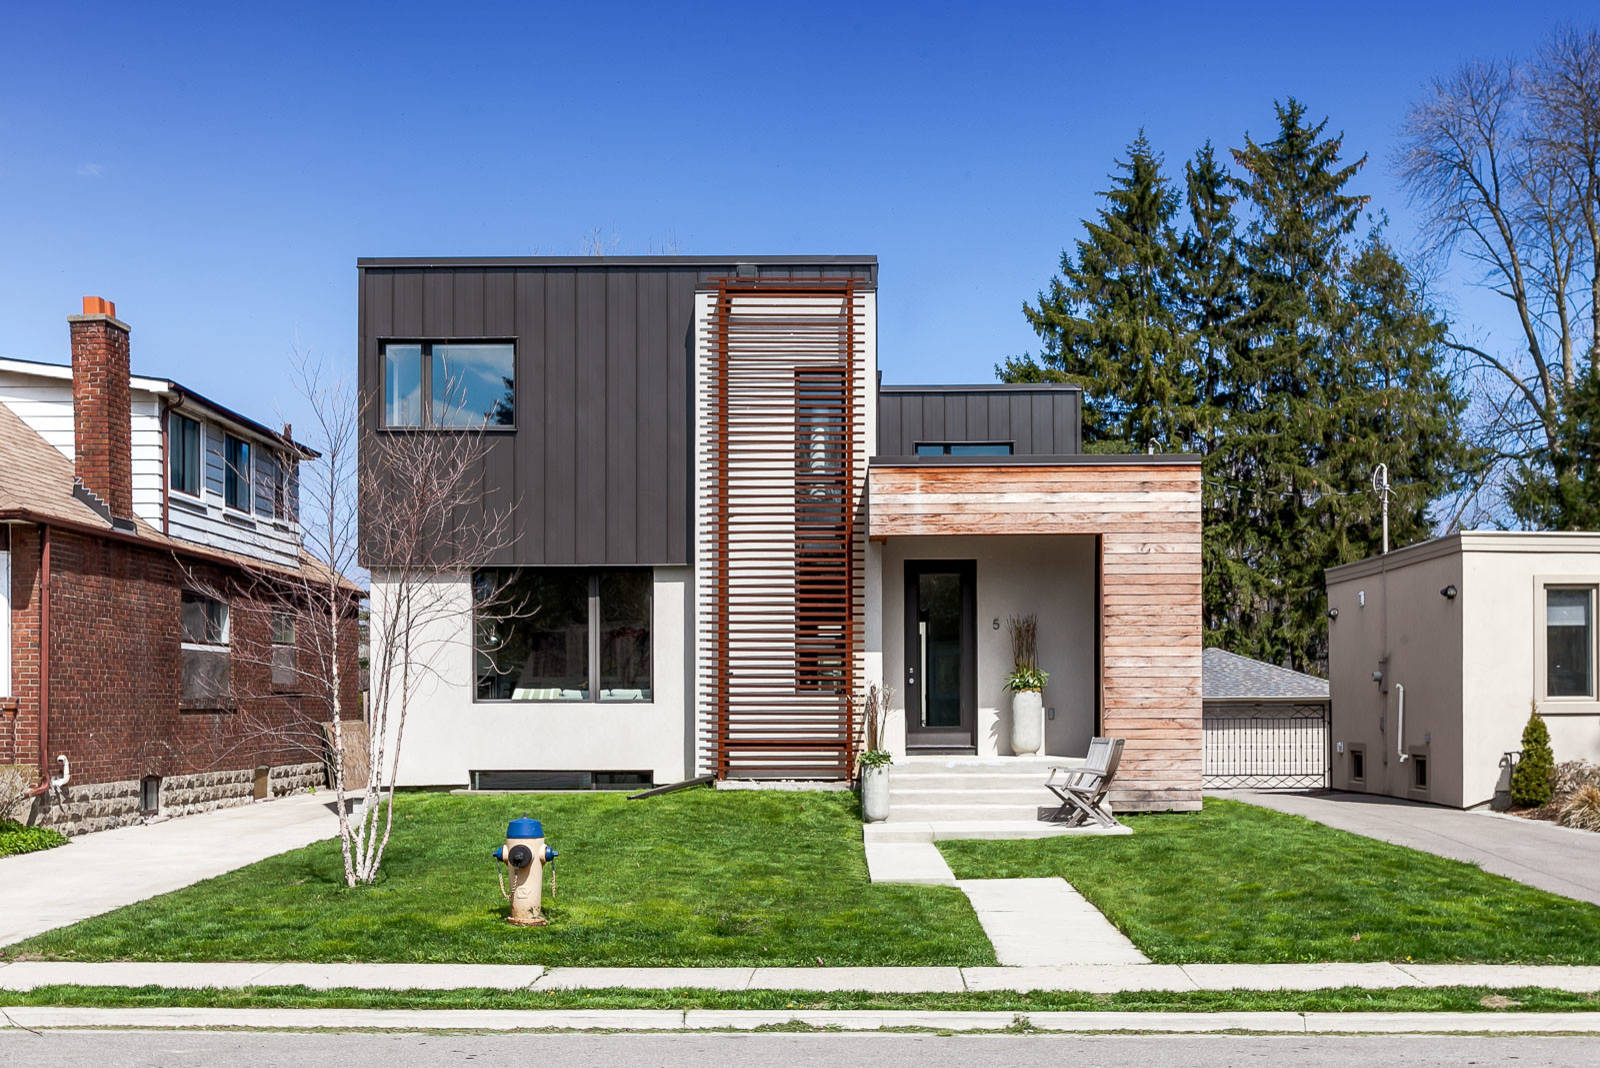 15 outstanding contemporary residence designs you must see - Architecture contemporaine residence parks ...